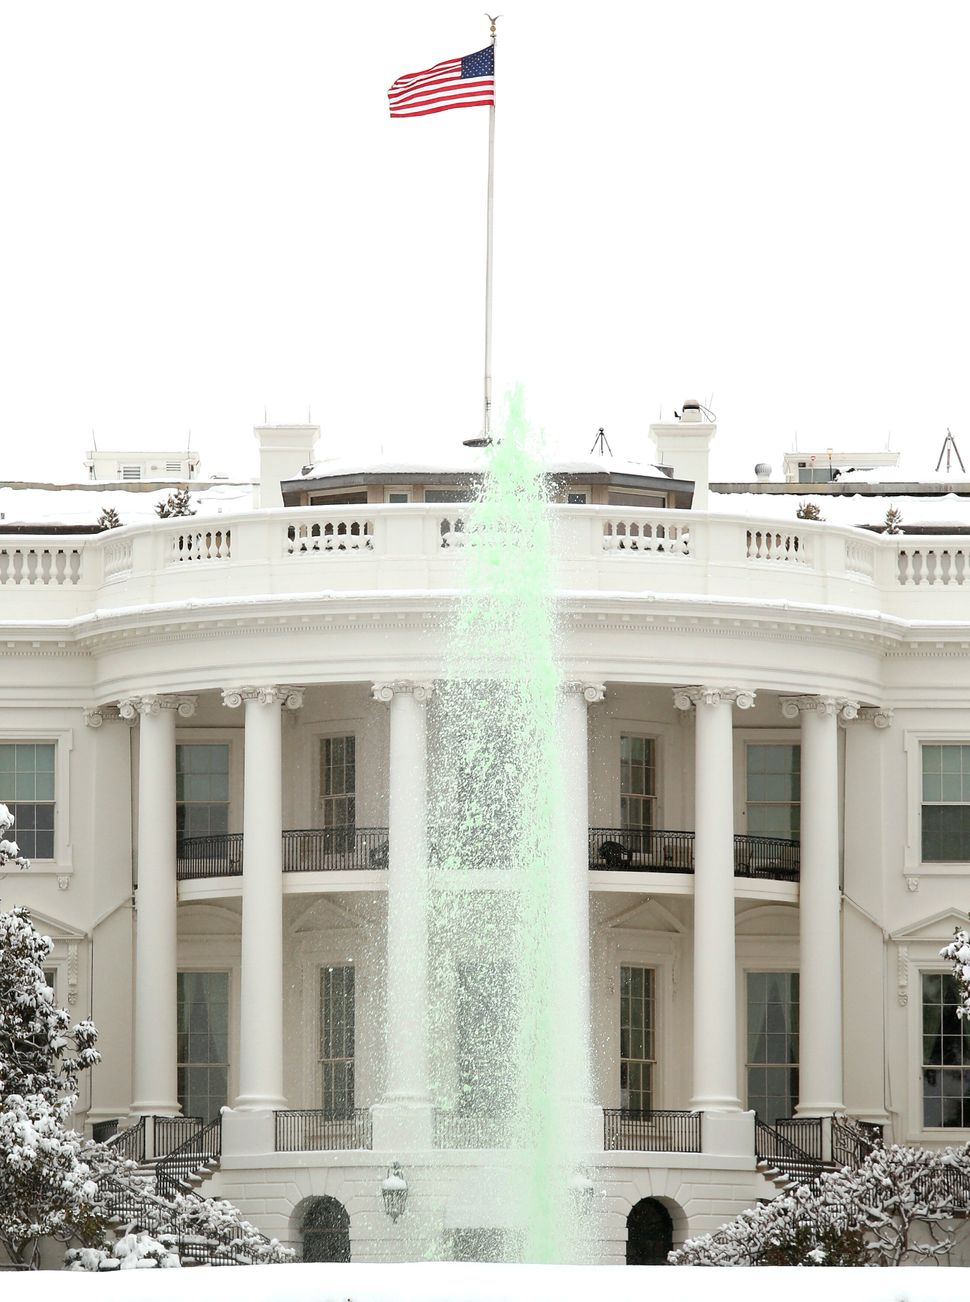 The fountain dyed green for St Patrick's Day is seen on the south lawn of the White House in Washington, DC on March 17, 2014